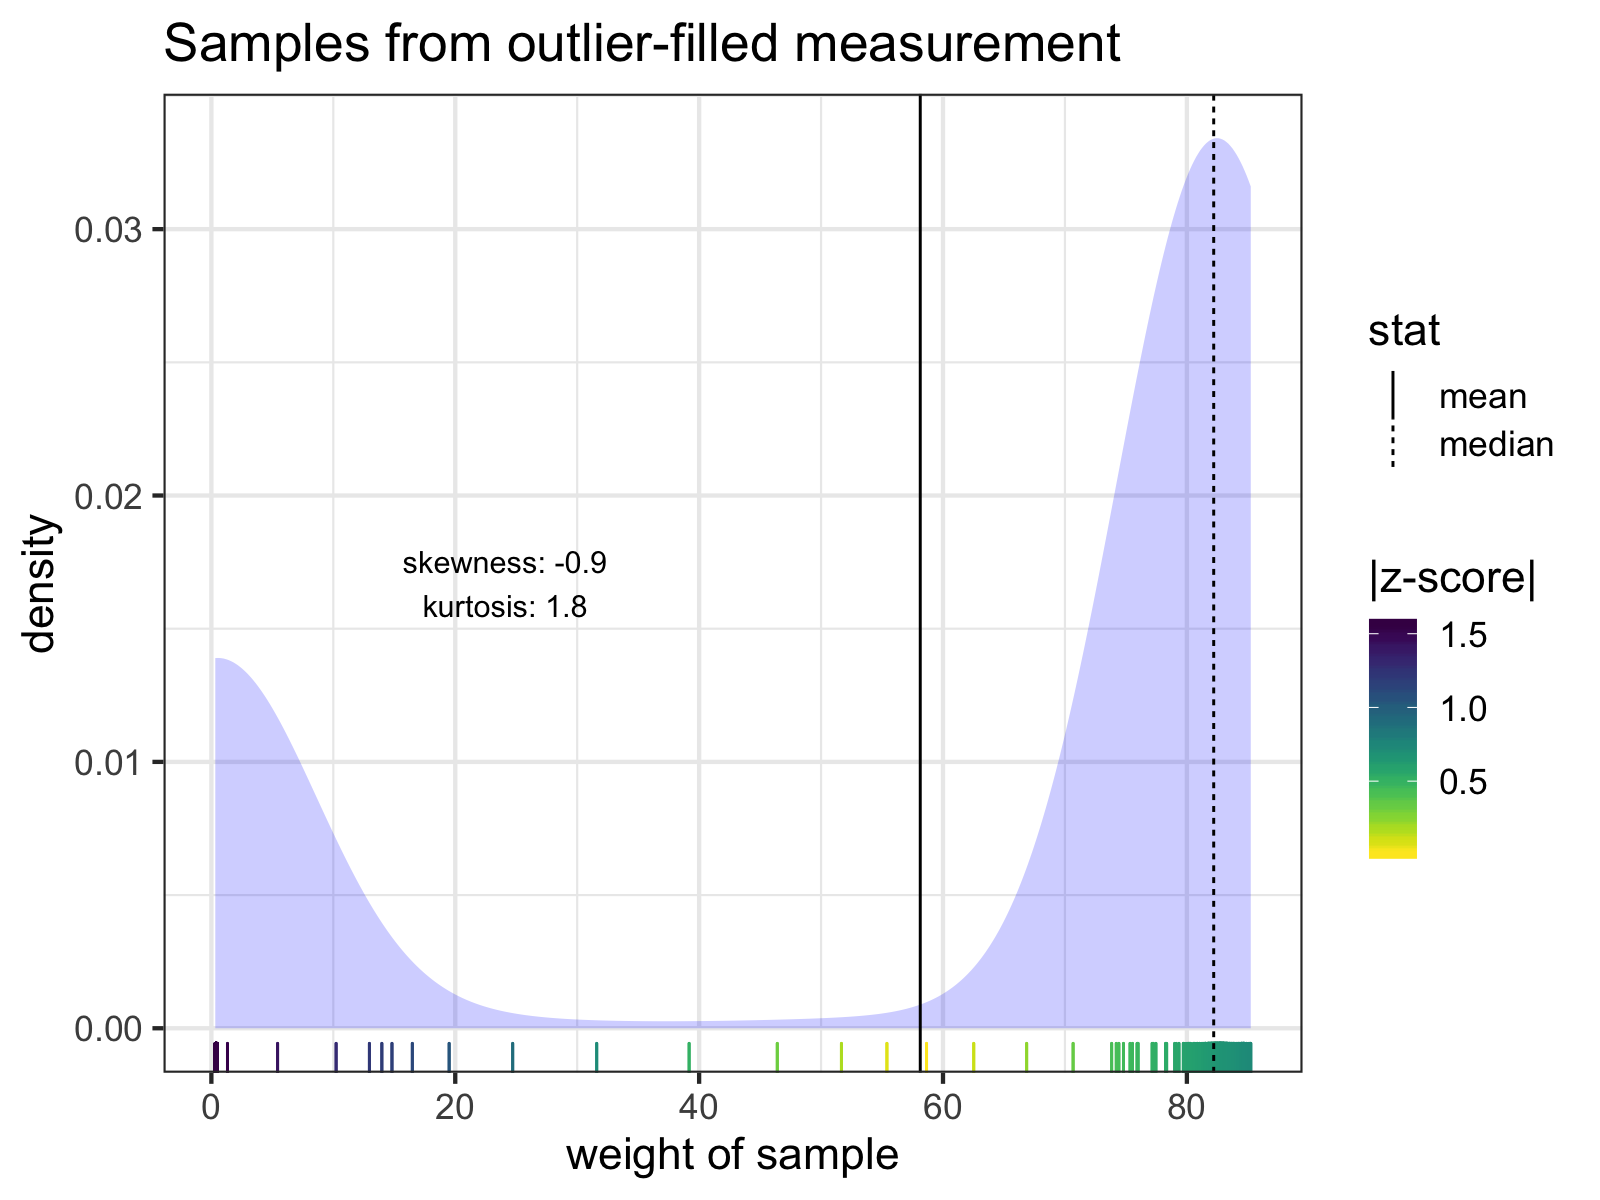 The individual samples of the measurement with the lowest mean weight. Notice how none of the z-scores of any of the samples exceed 3 SD from the mean. The mean and median of the samples are indicated with solid and dashed lines, respectively. Skew and kurtosis are also shown.